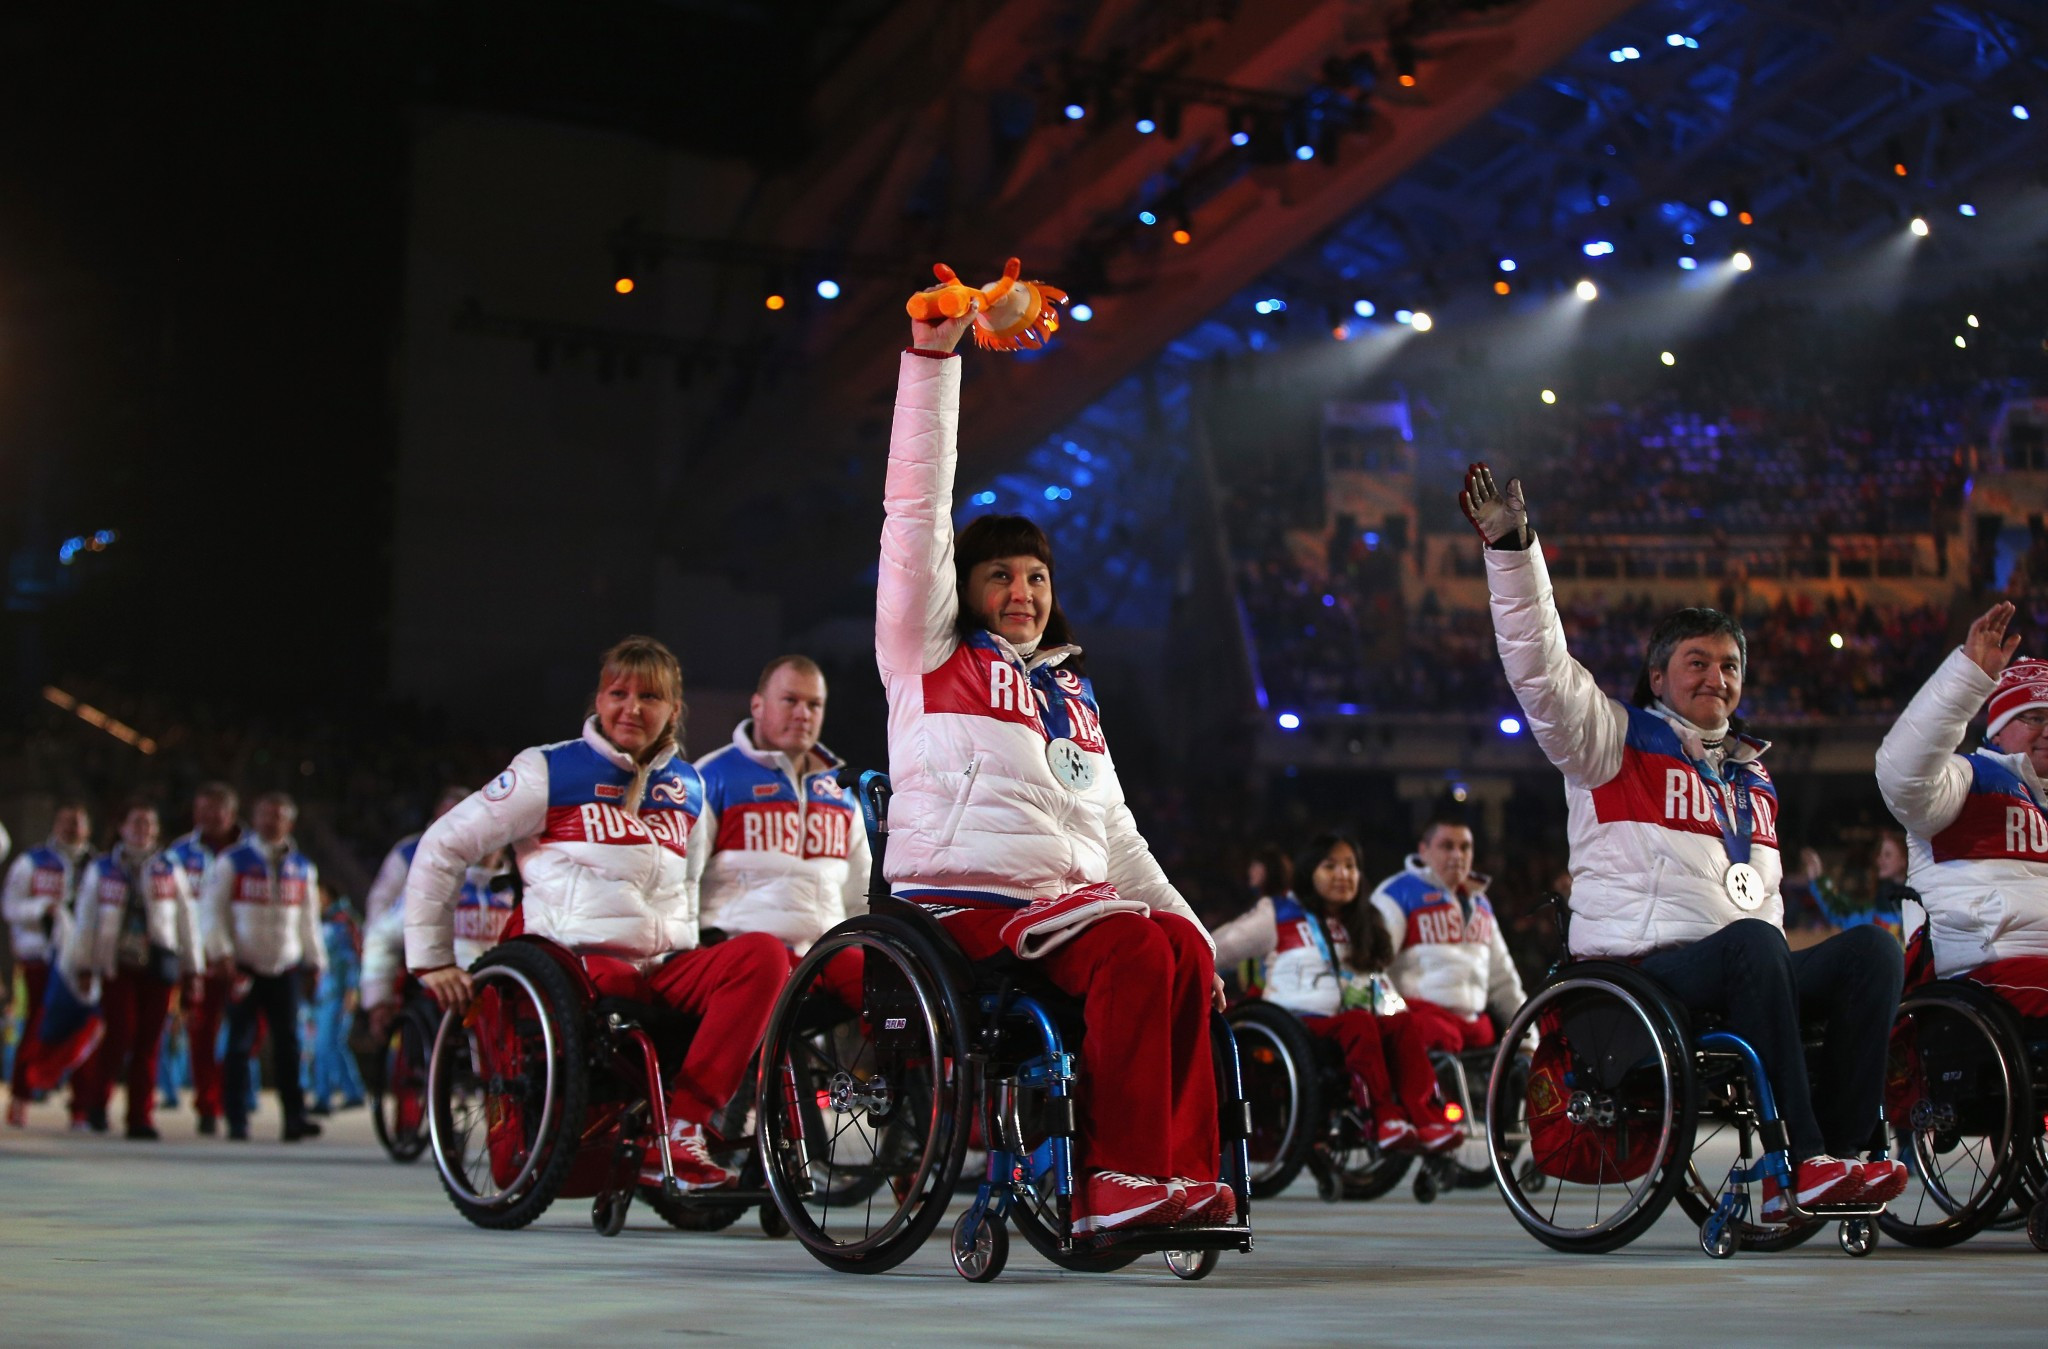 Russia won over a third of Paralympic medals at Sochi 2014, but the country could miss Pyeongchang 2018 ©Getty Images